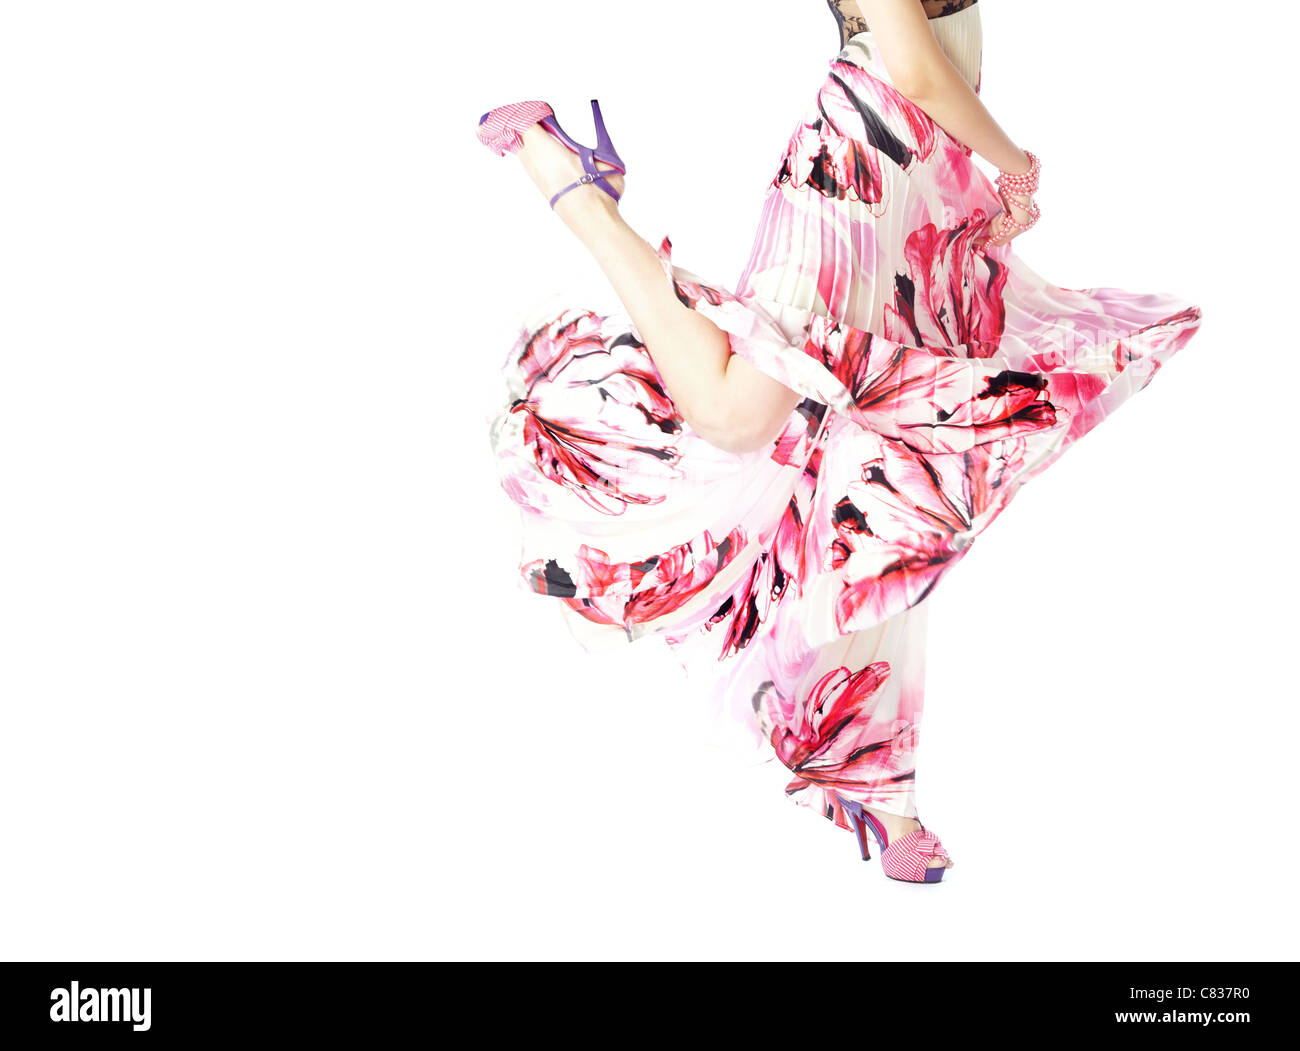 Body part of the woman dancing in stylish pink dress - Stock Image